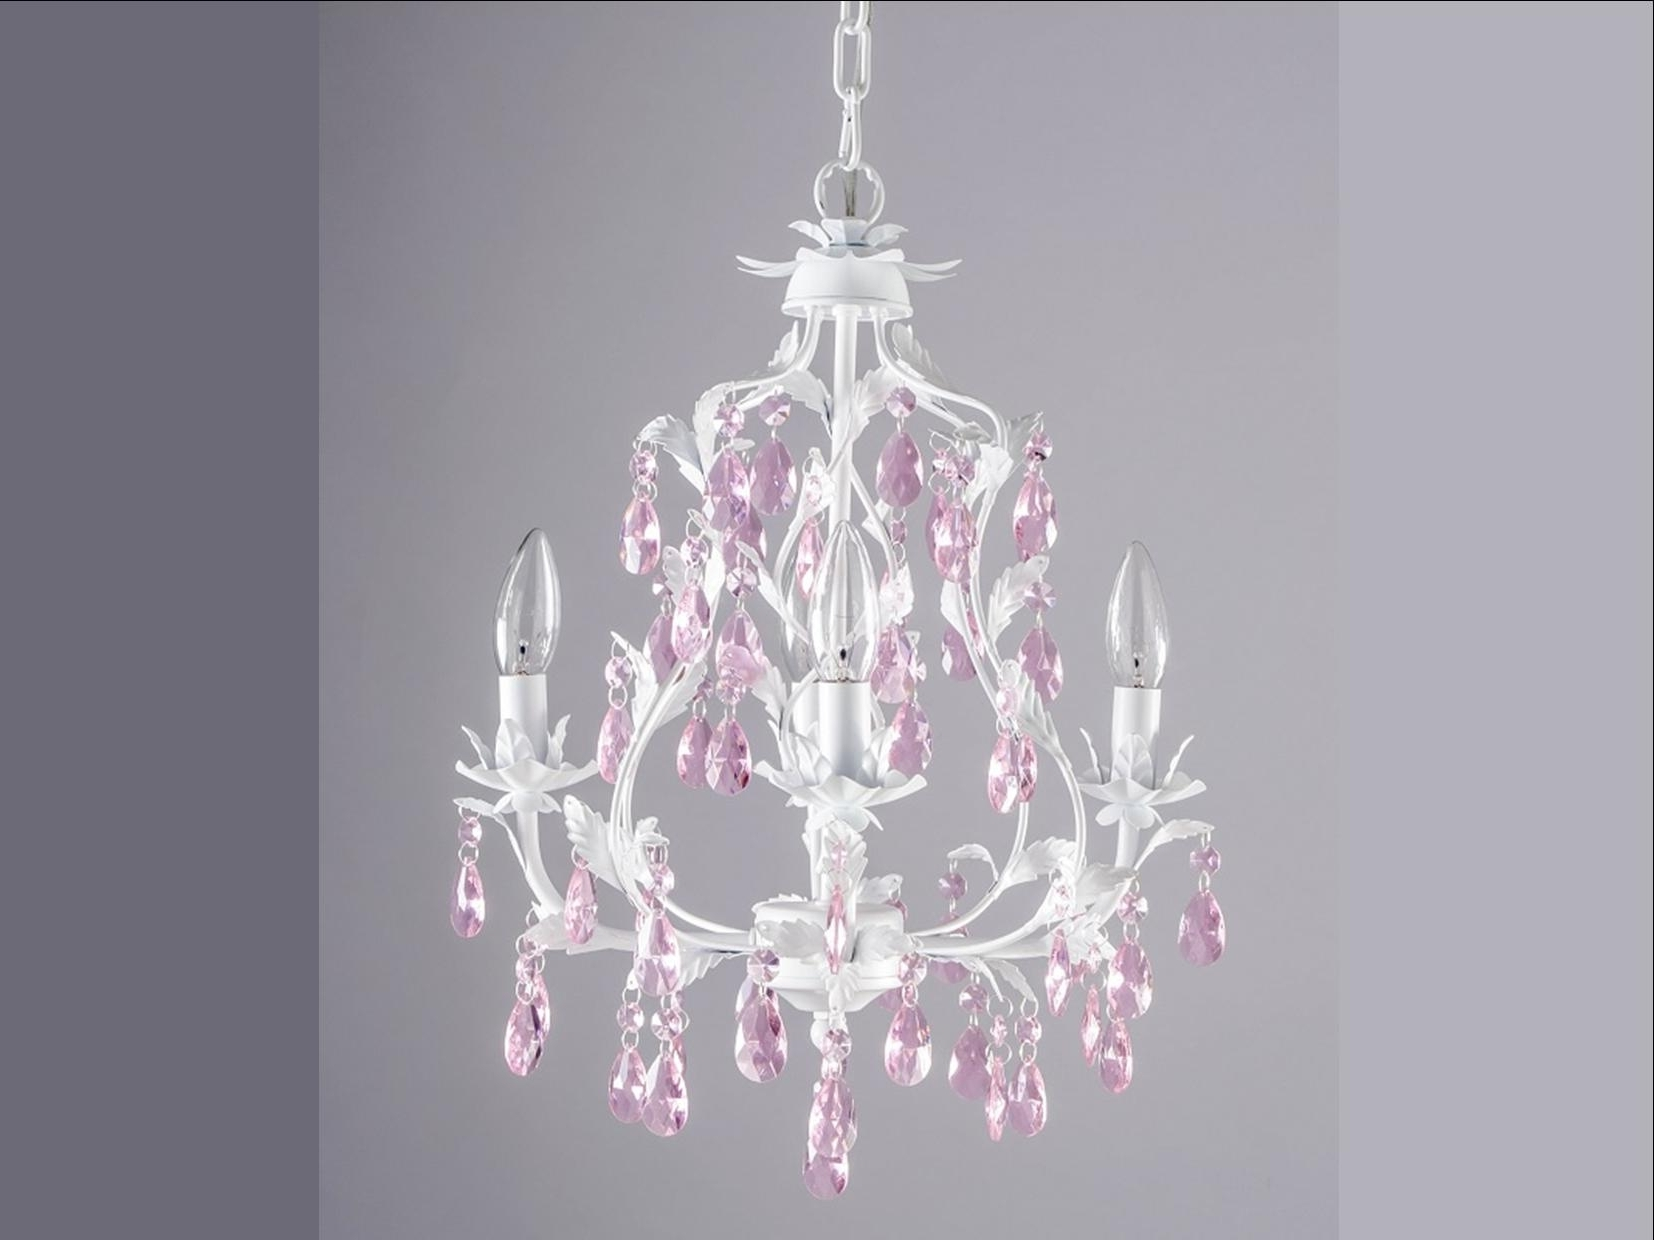 Current Childrens Pendant Lamp Shades Plug In Chandeliers For Kids Pink In Chandeliers For Kids (View 3 of 20)